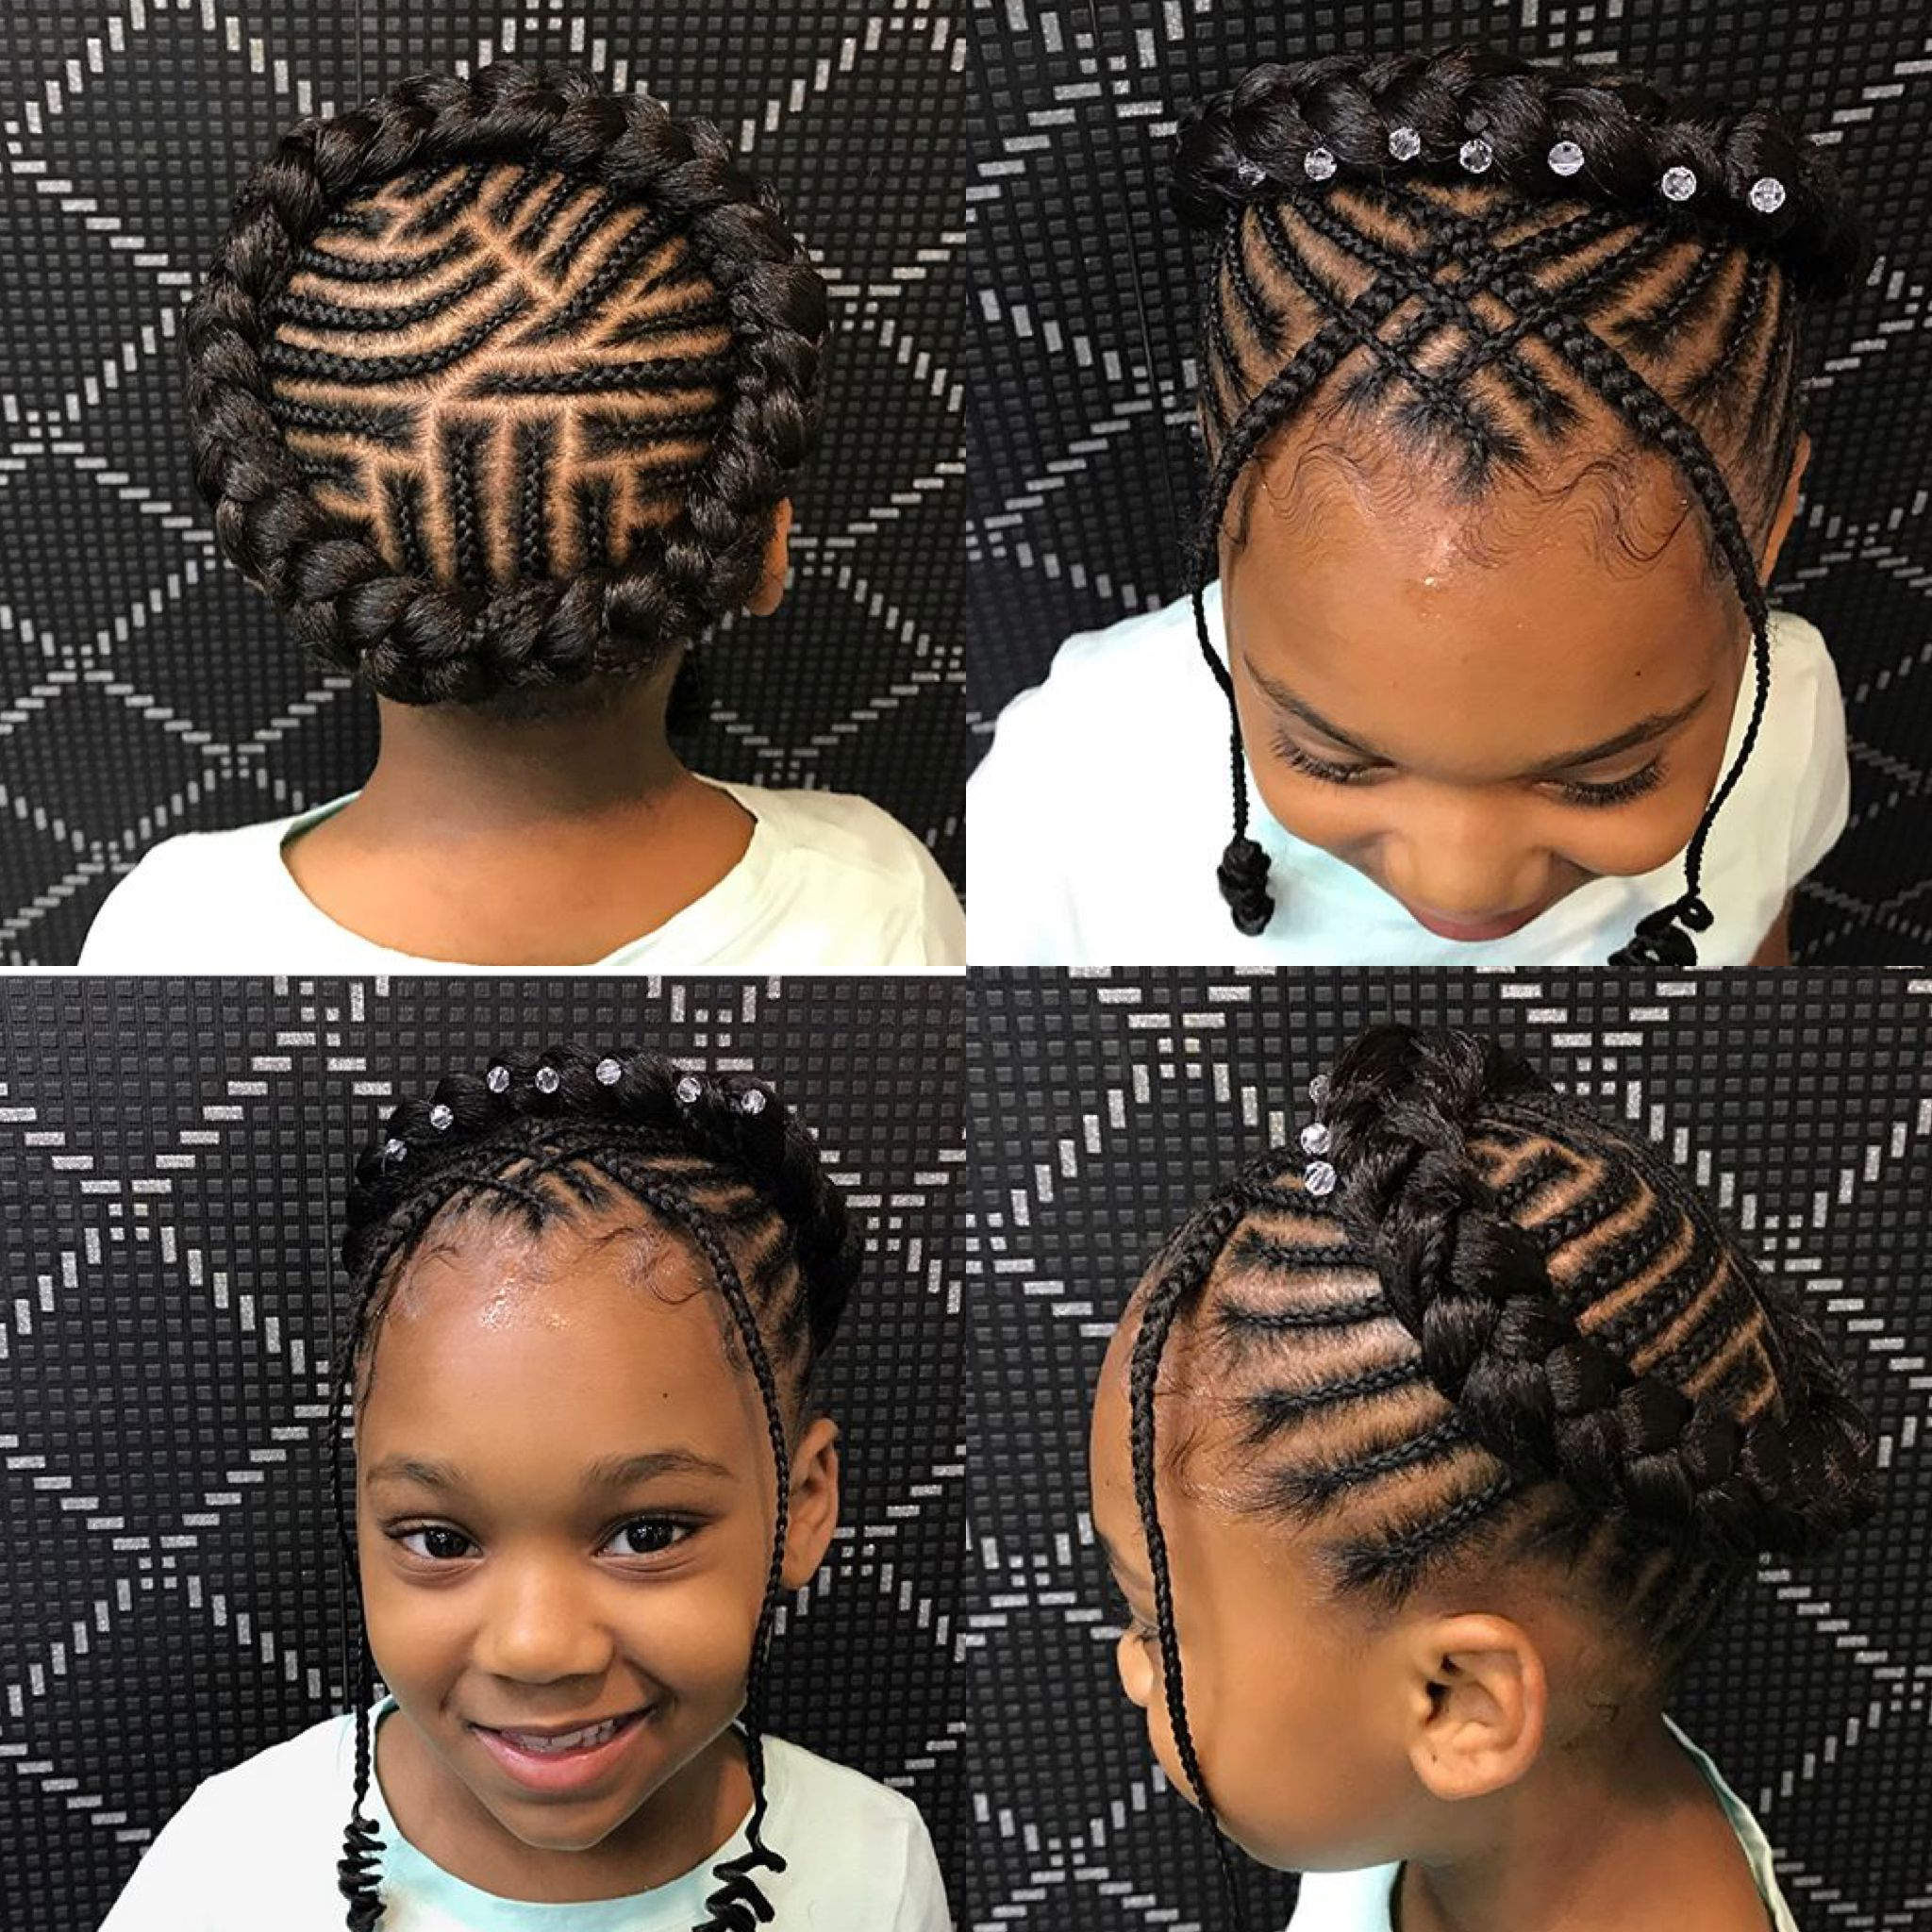 Kids Hair With Regard To 2019 Halo Braided Hairstyles With Beads (View 10 of 20)